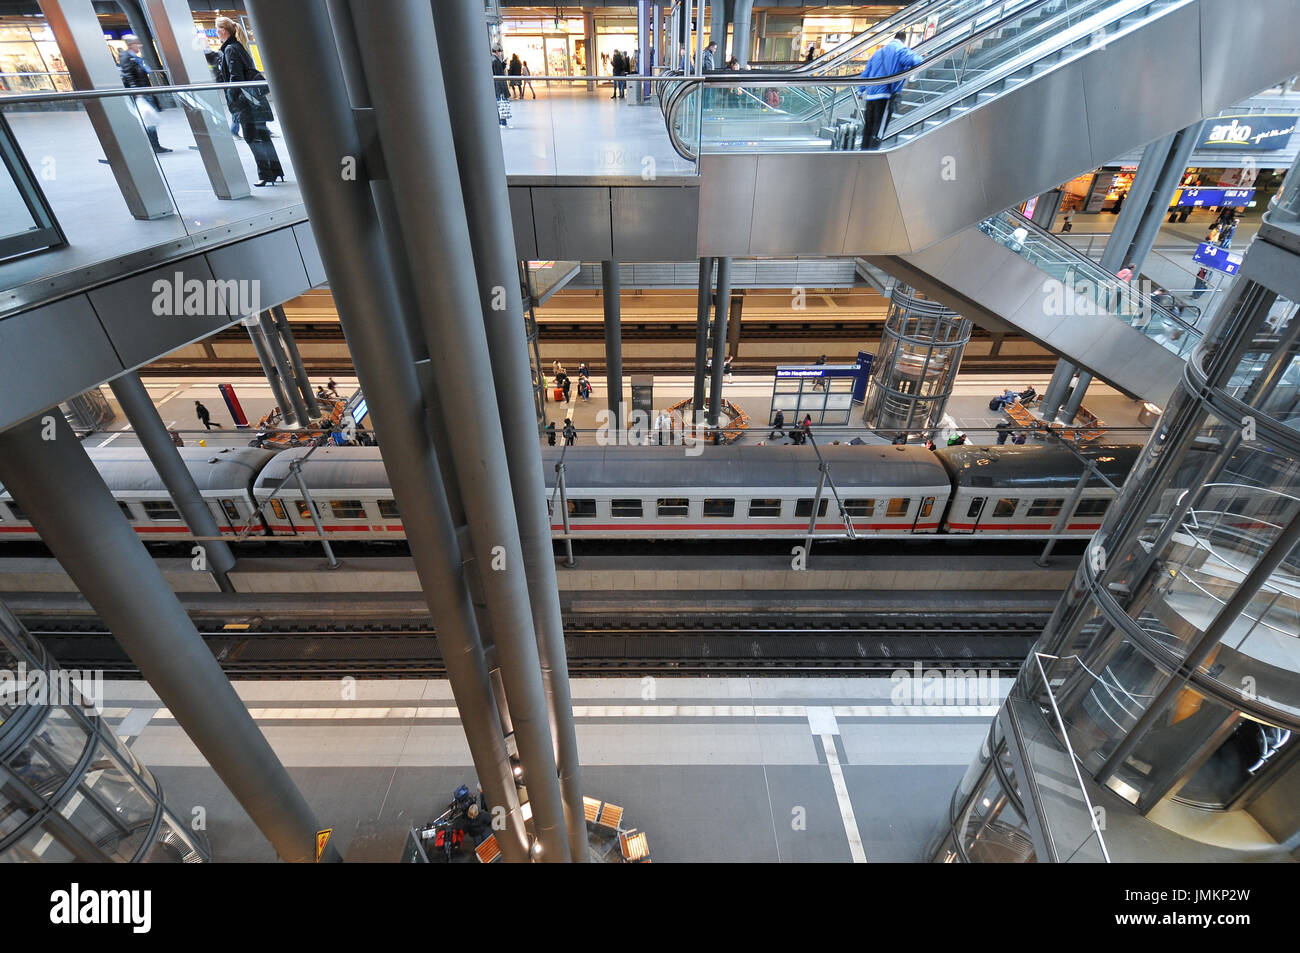 View inside Berlin Hauptbahnhof, central station with trains and people present - Stock Image